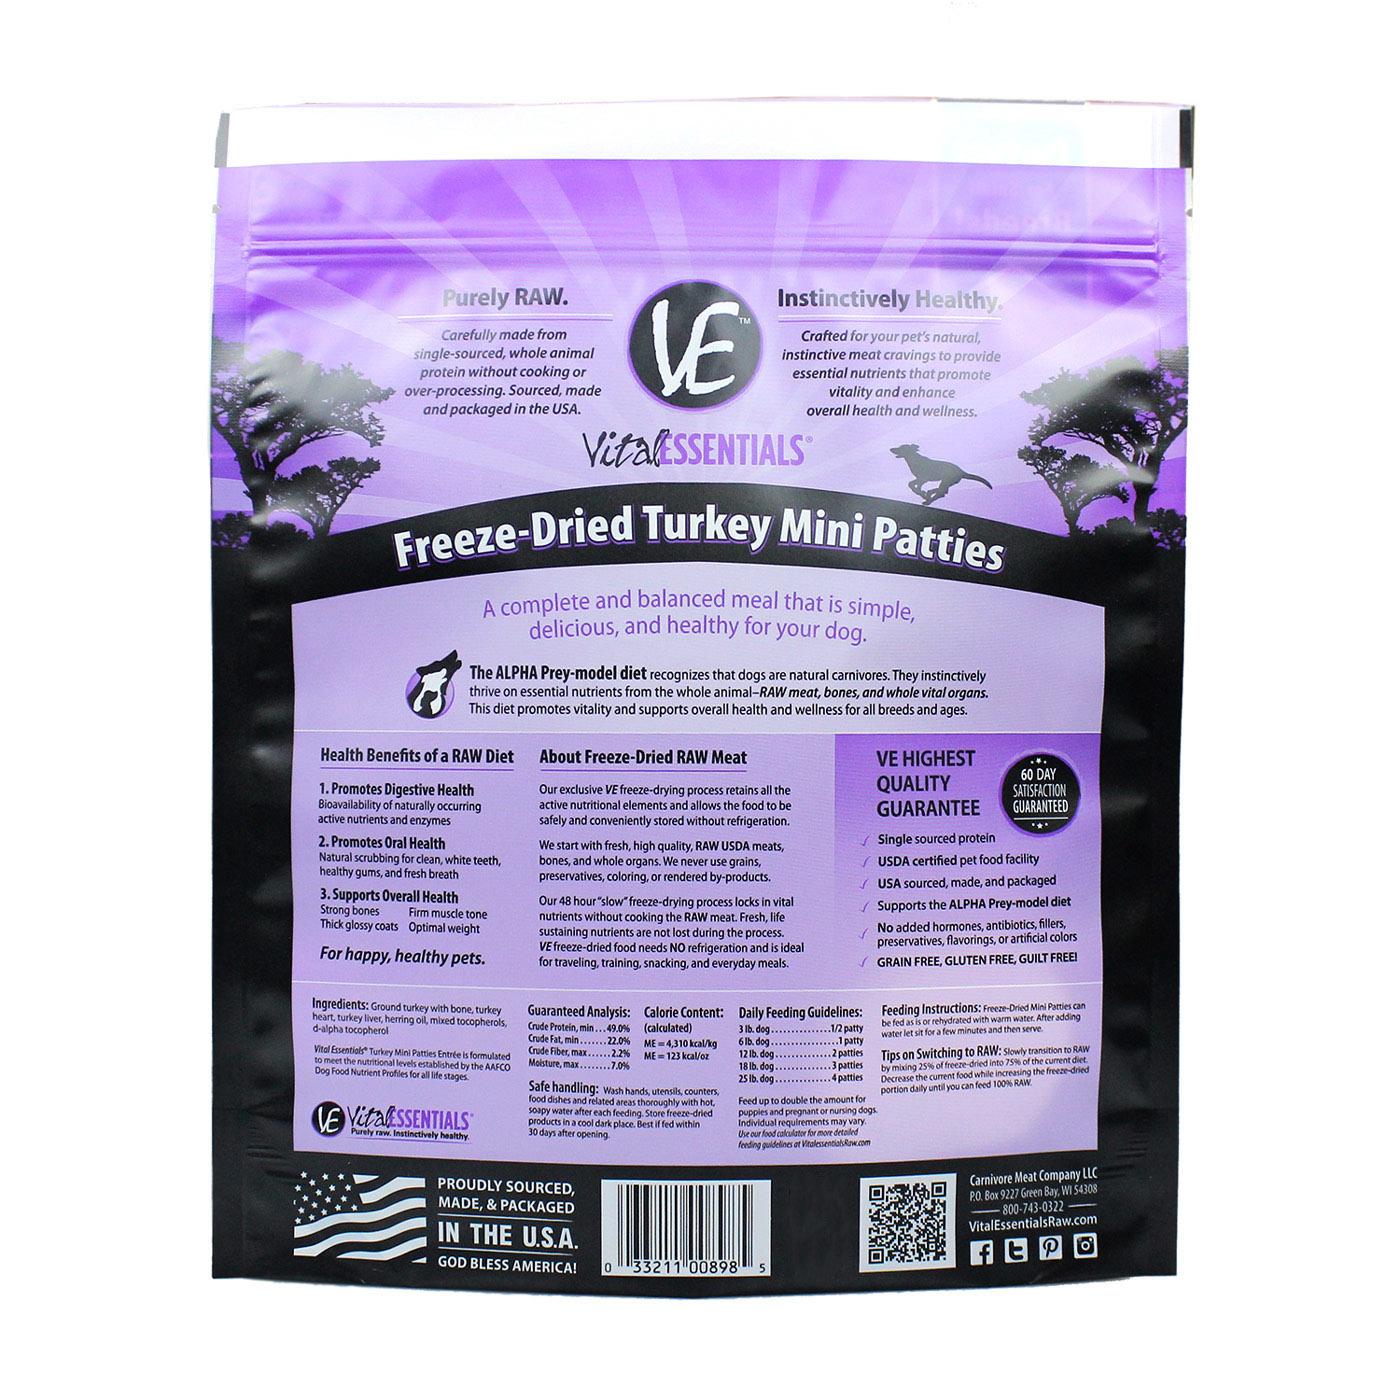 Vital Essentials Vital Essentials Turkey Mini Patties Freeze Dried 1lb